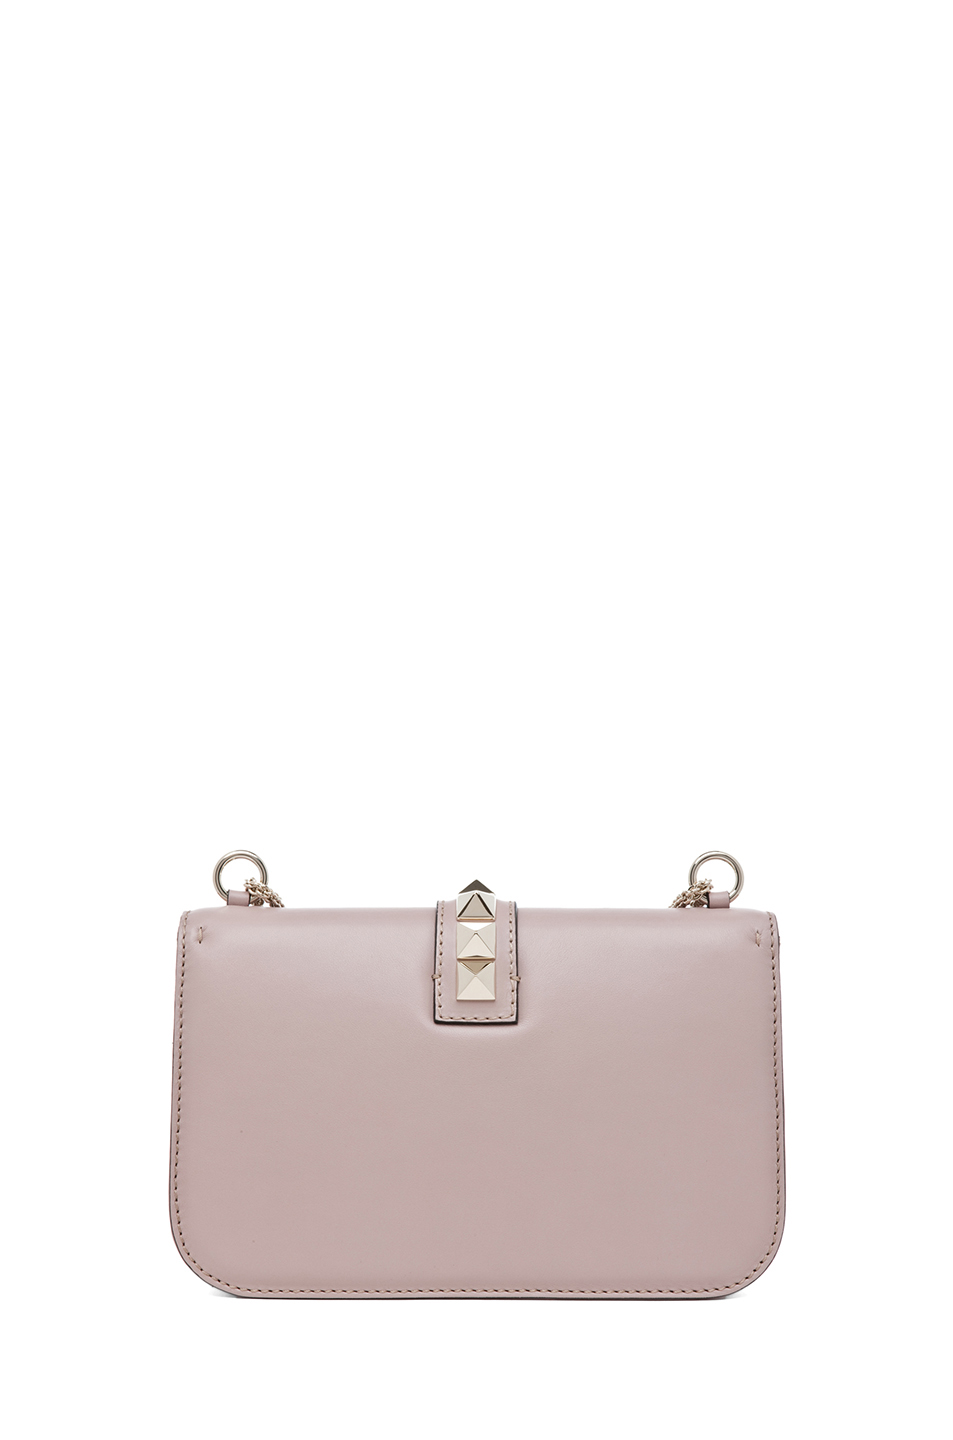 Valentino | Medium Lock Flap Bag in Poudre